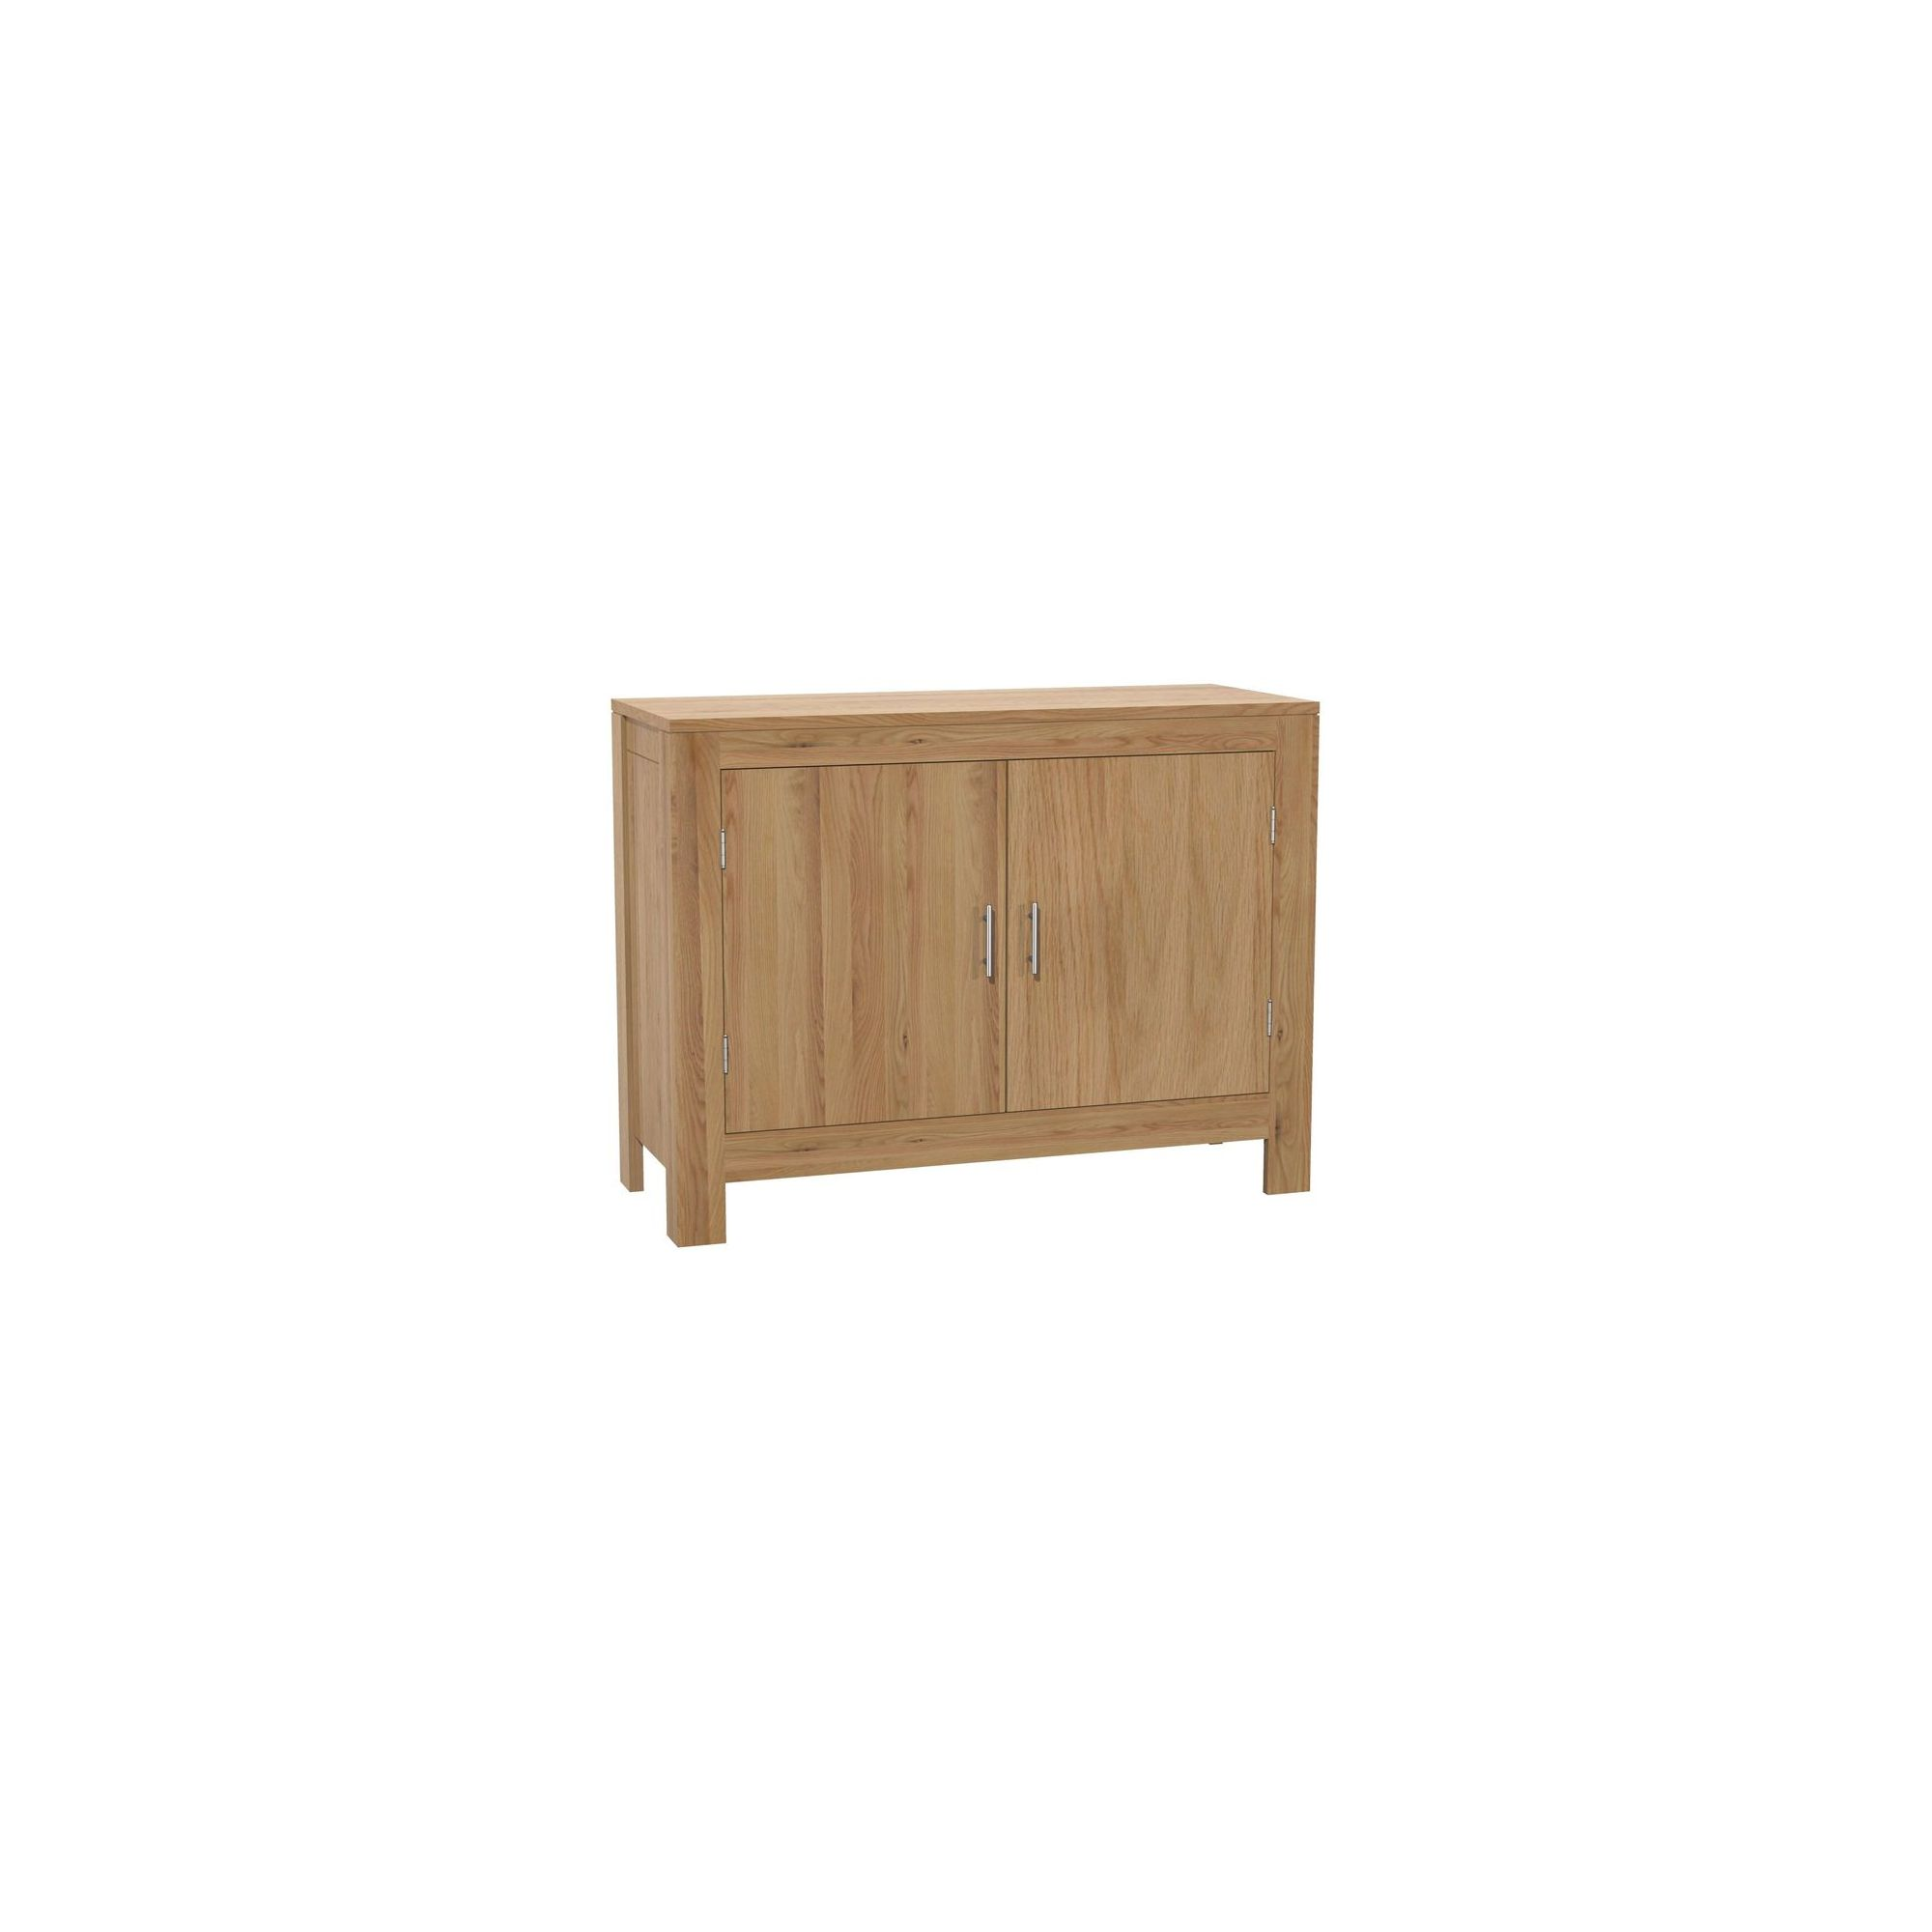 Kelburn Furniture Milano 2 Door Sideboard in Clear Satin Lacquer at Tesco Direct